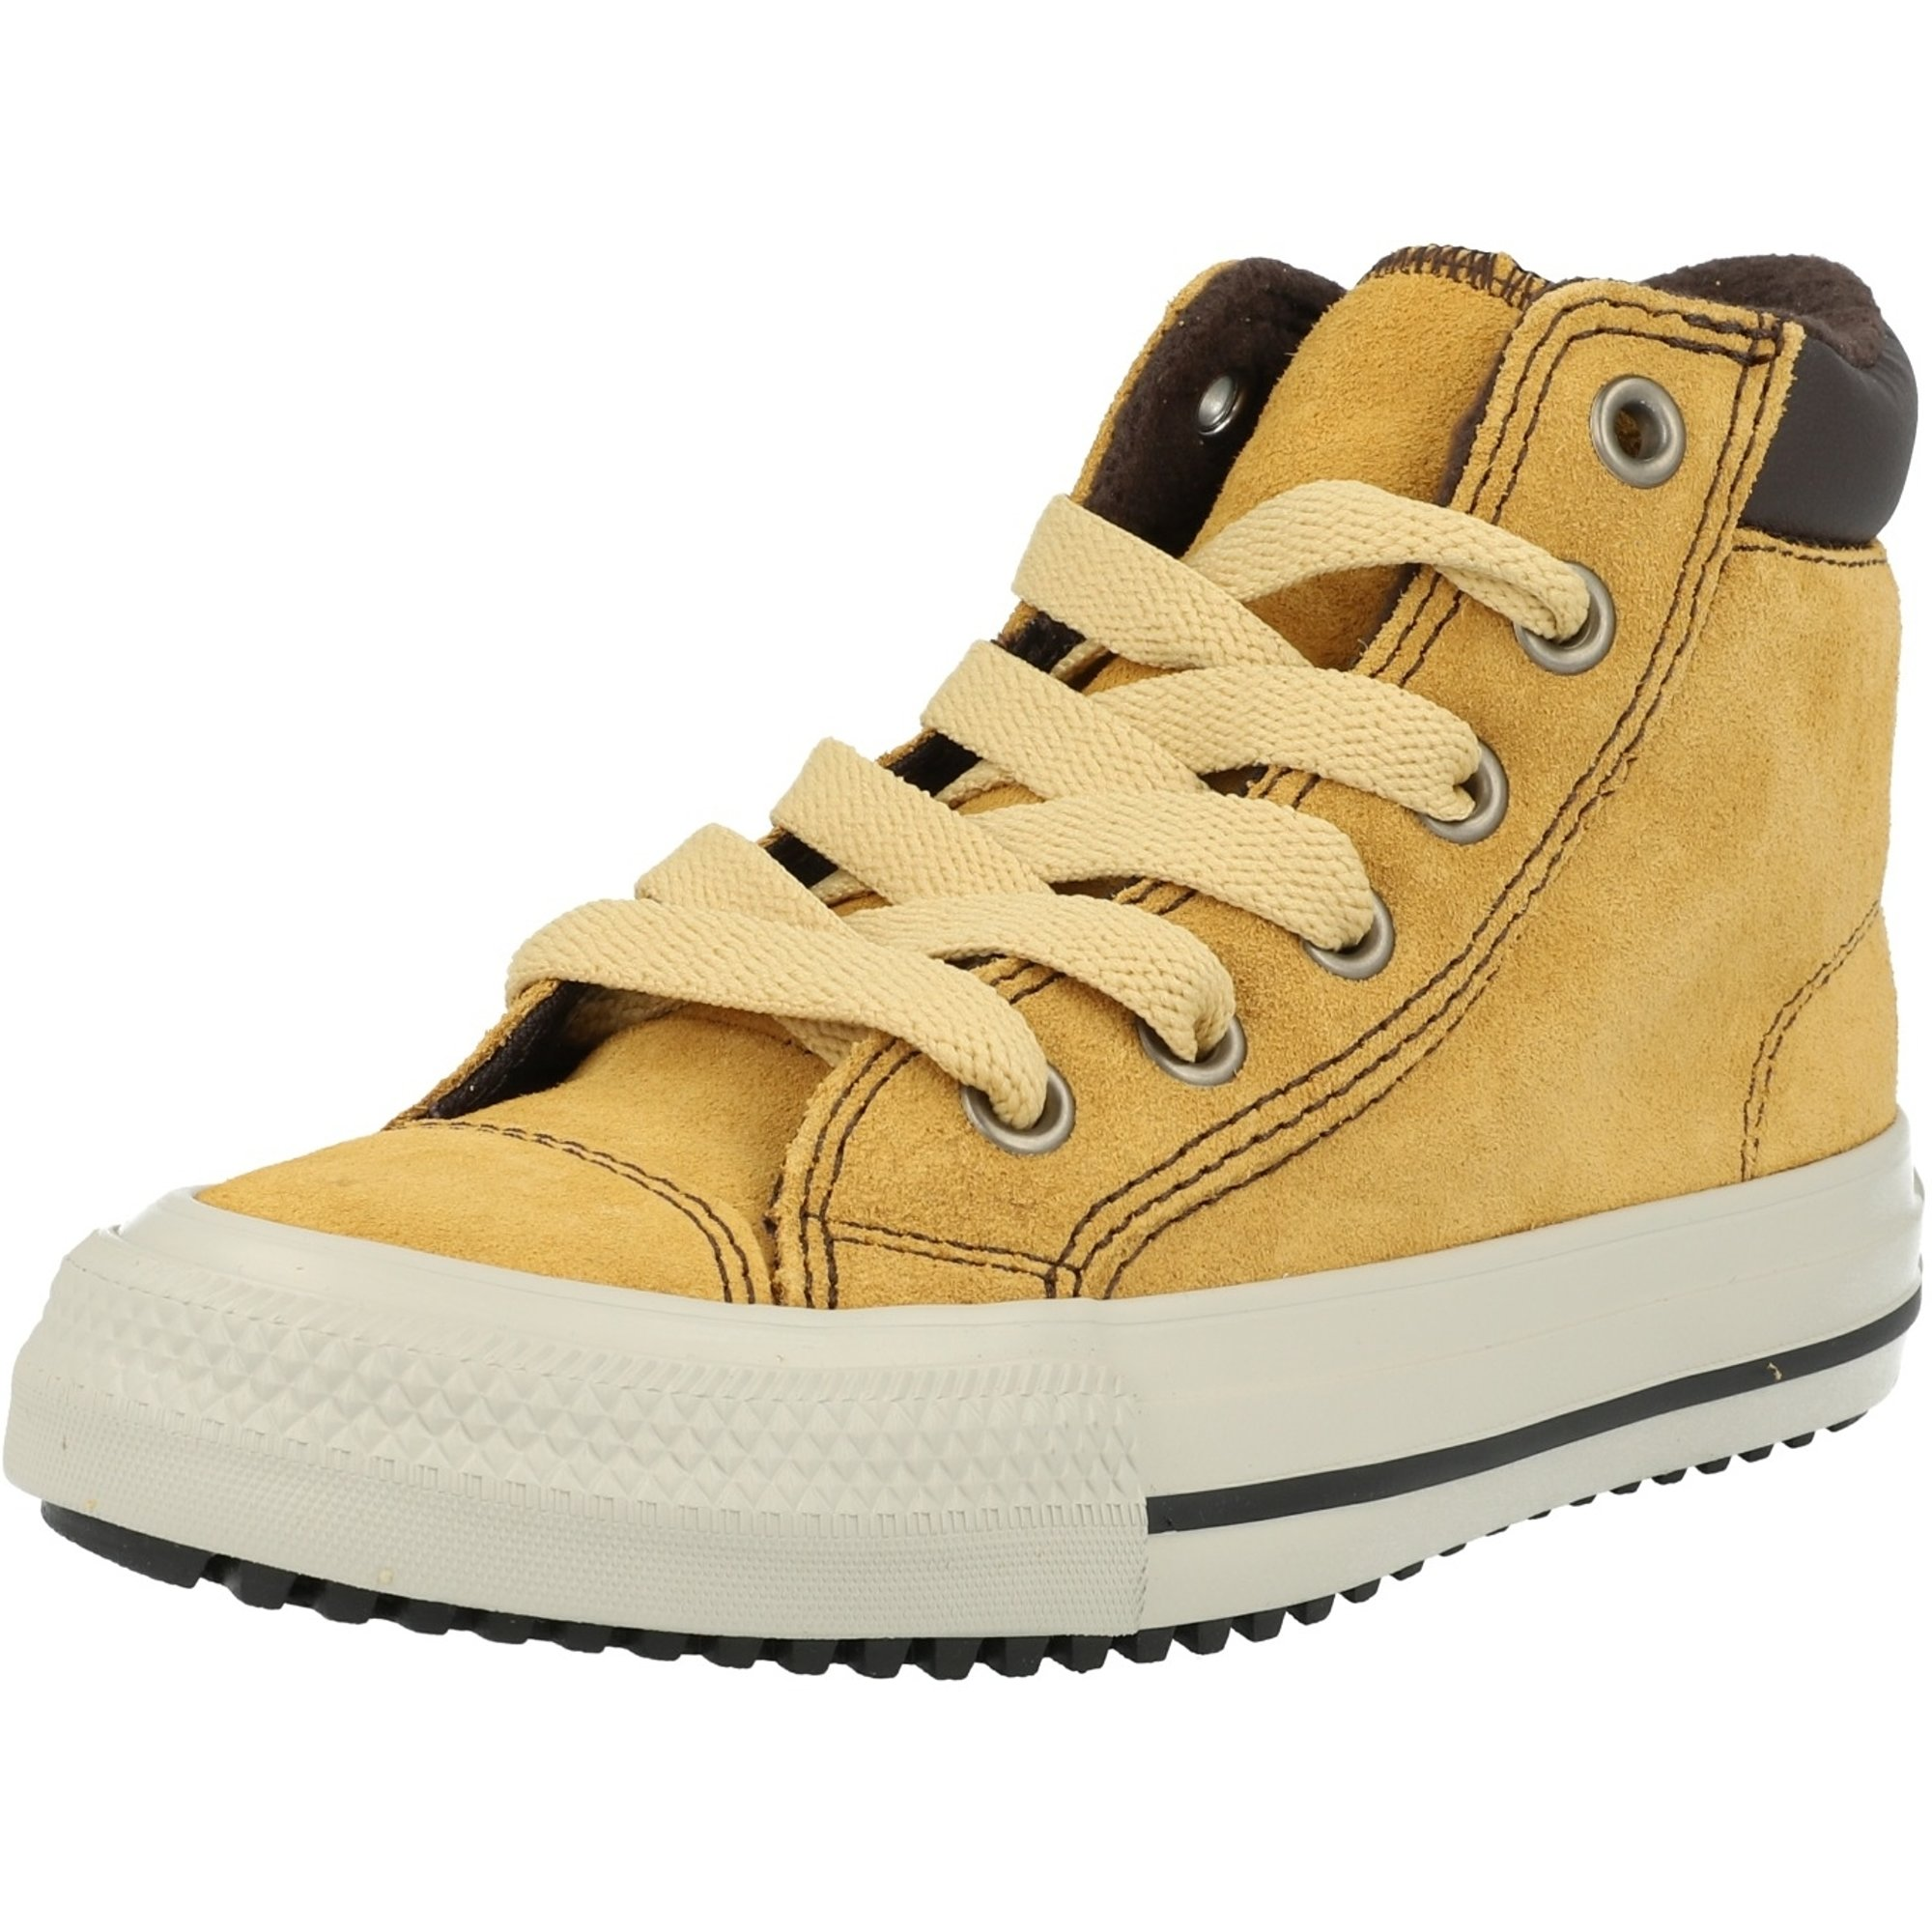 Star 2V PC Boot Hi On Mars Wheat Suede